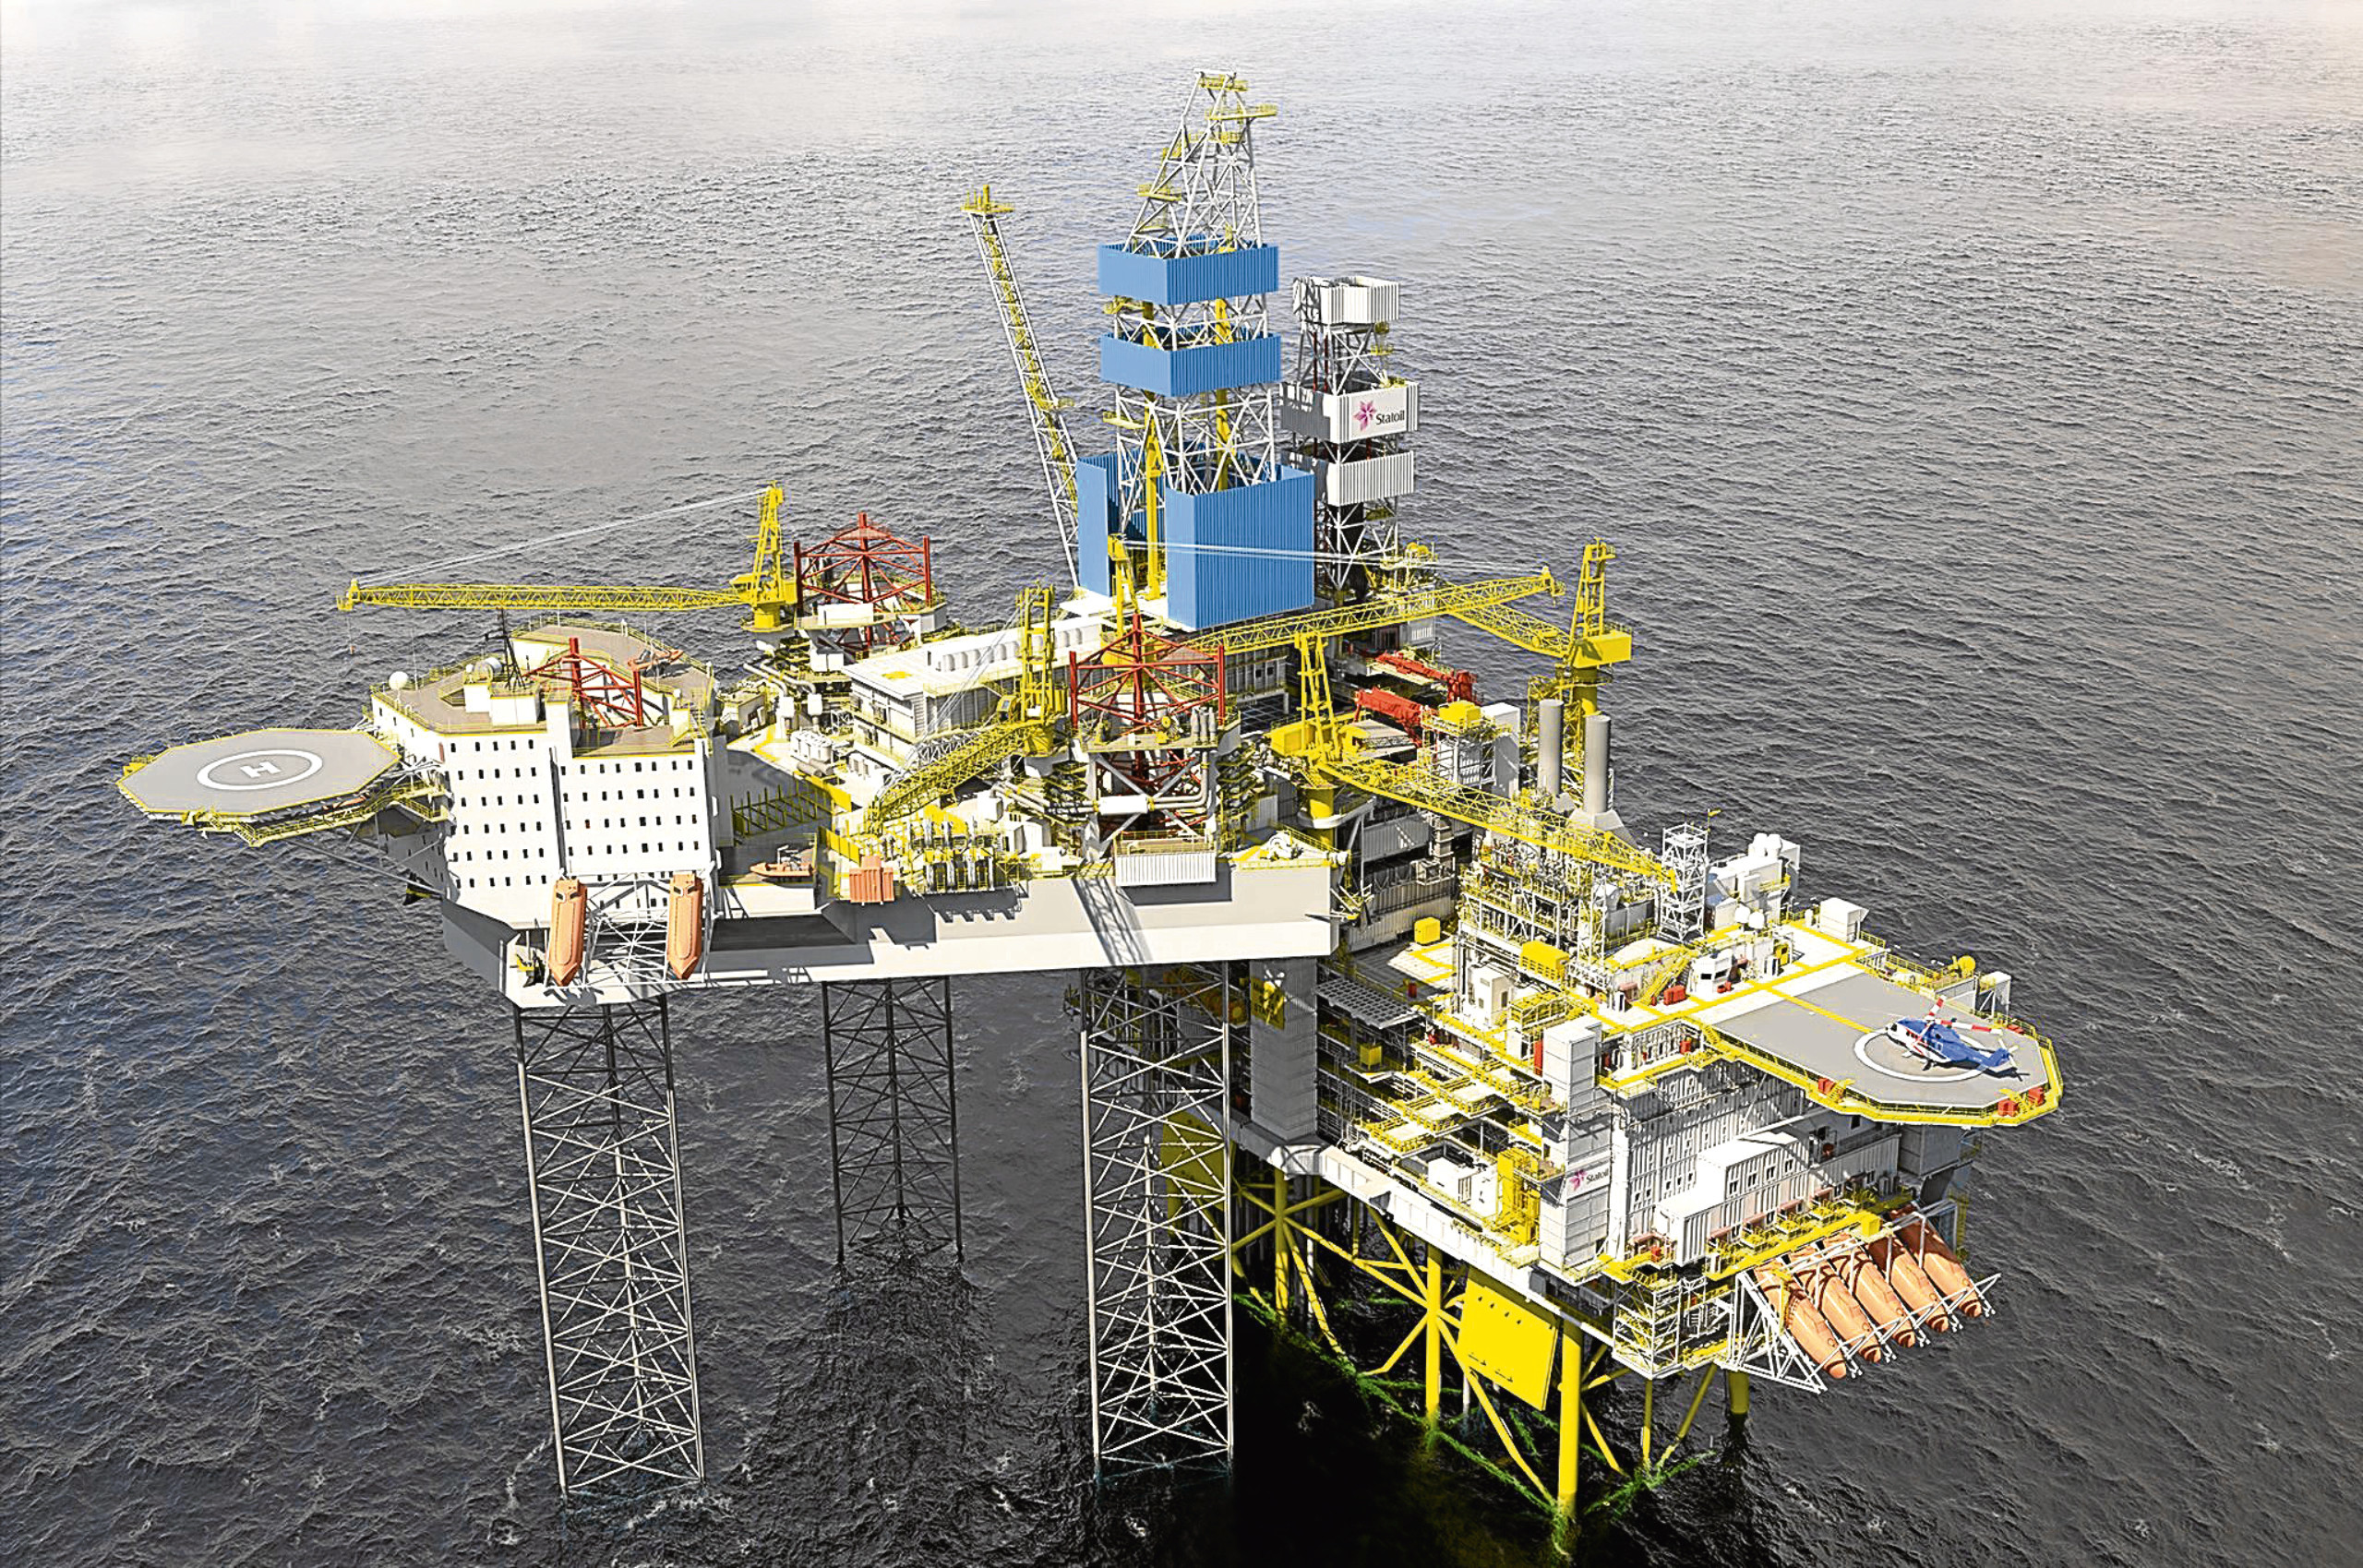 The Mariner rig